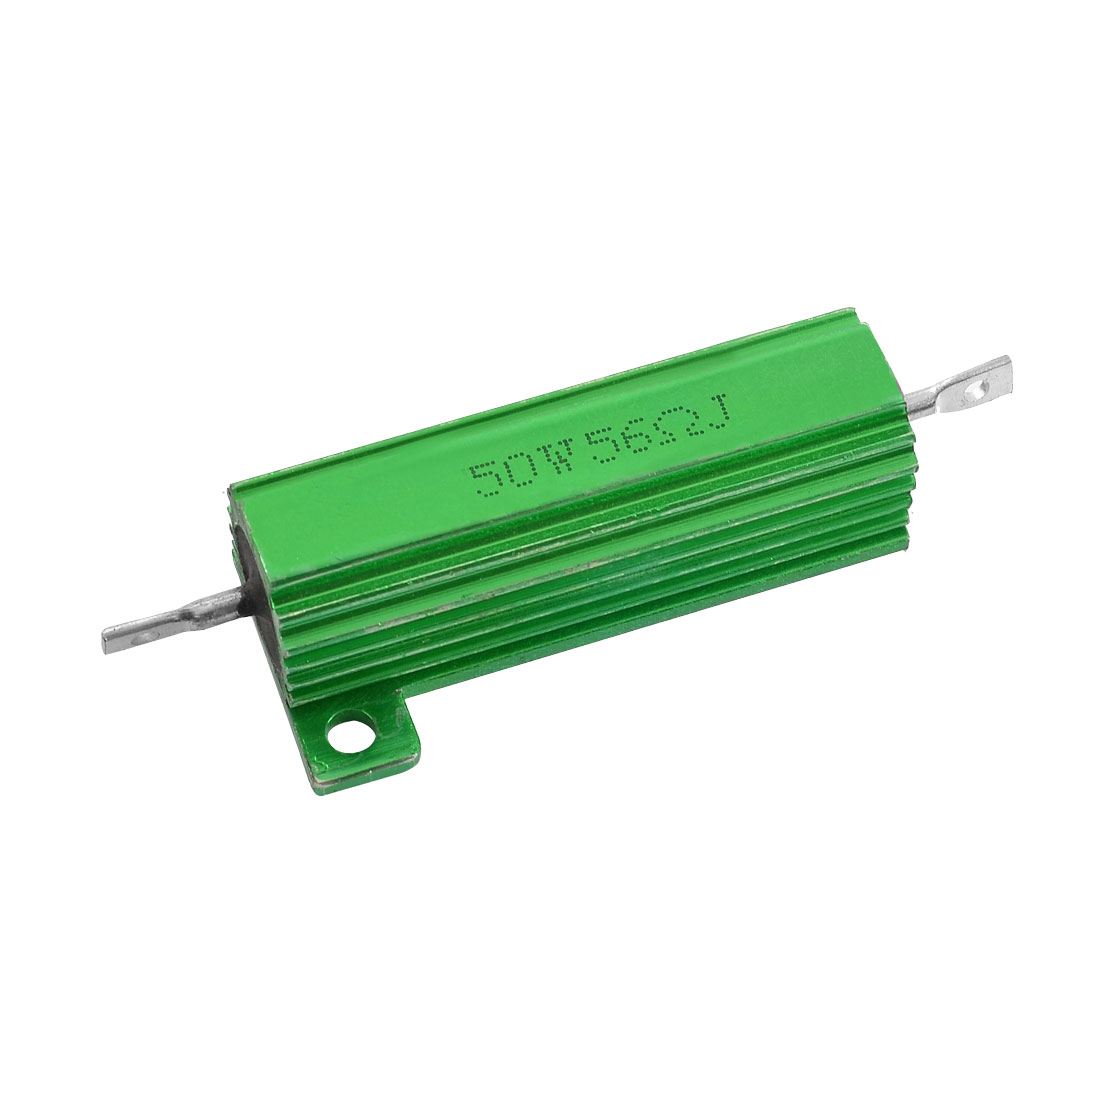 50W 56 Ohm 5% Chassis Mounted Aluminum Case Wirewound Resistor Green